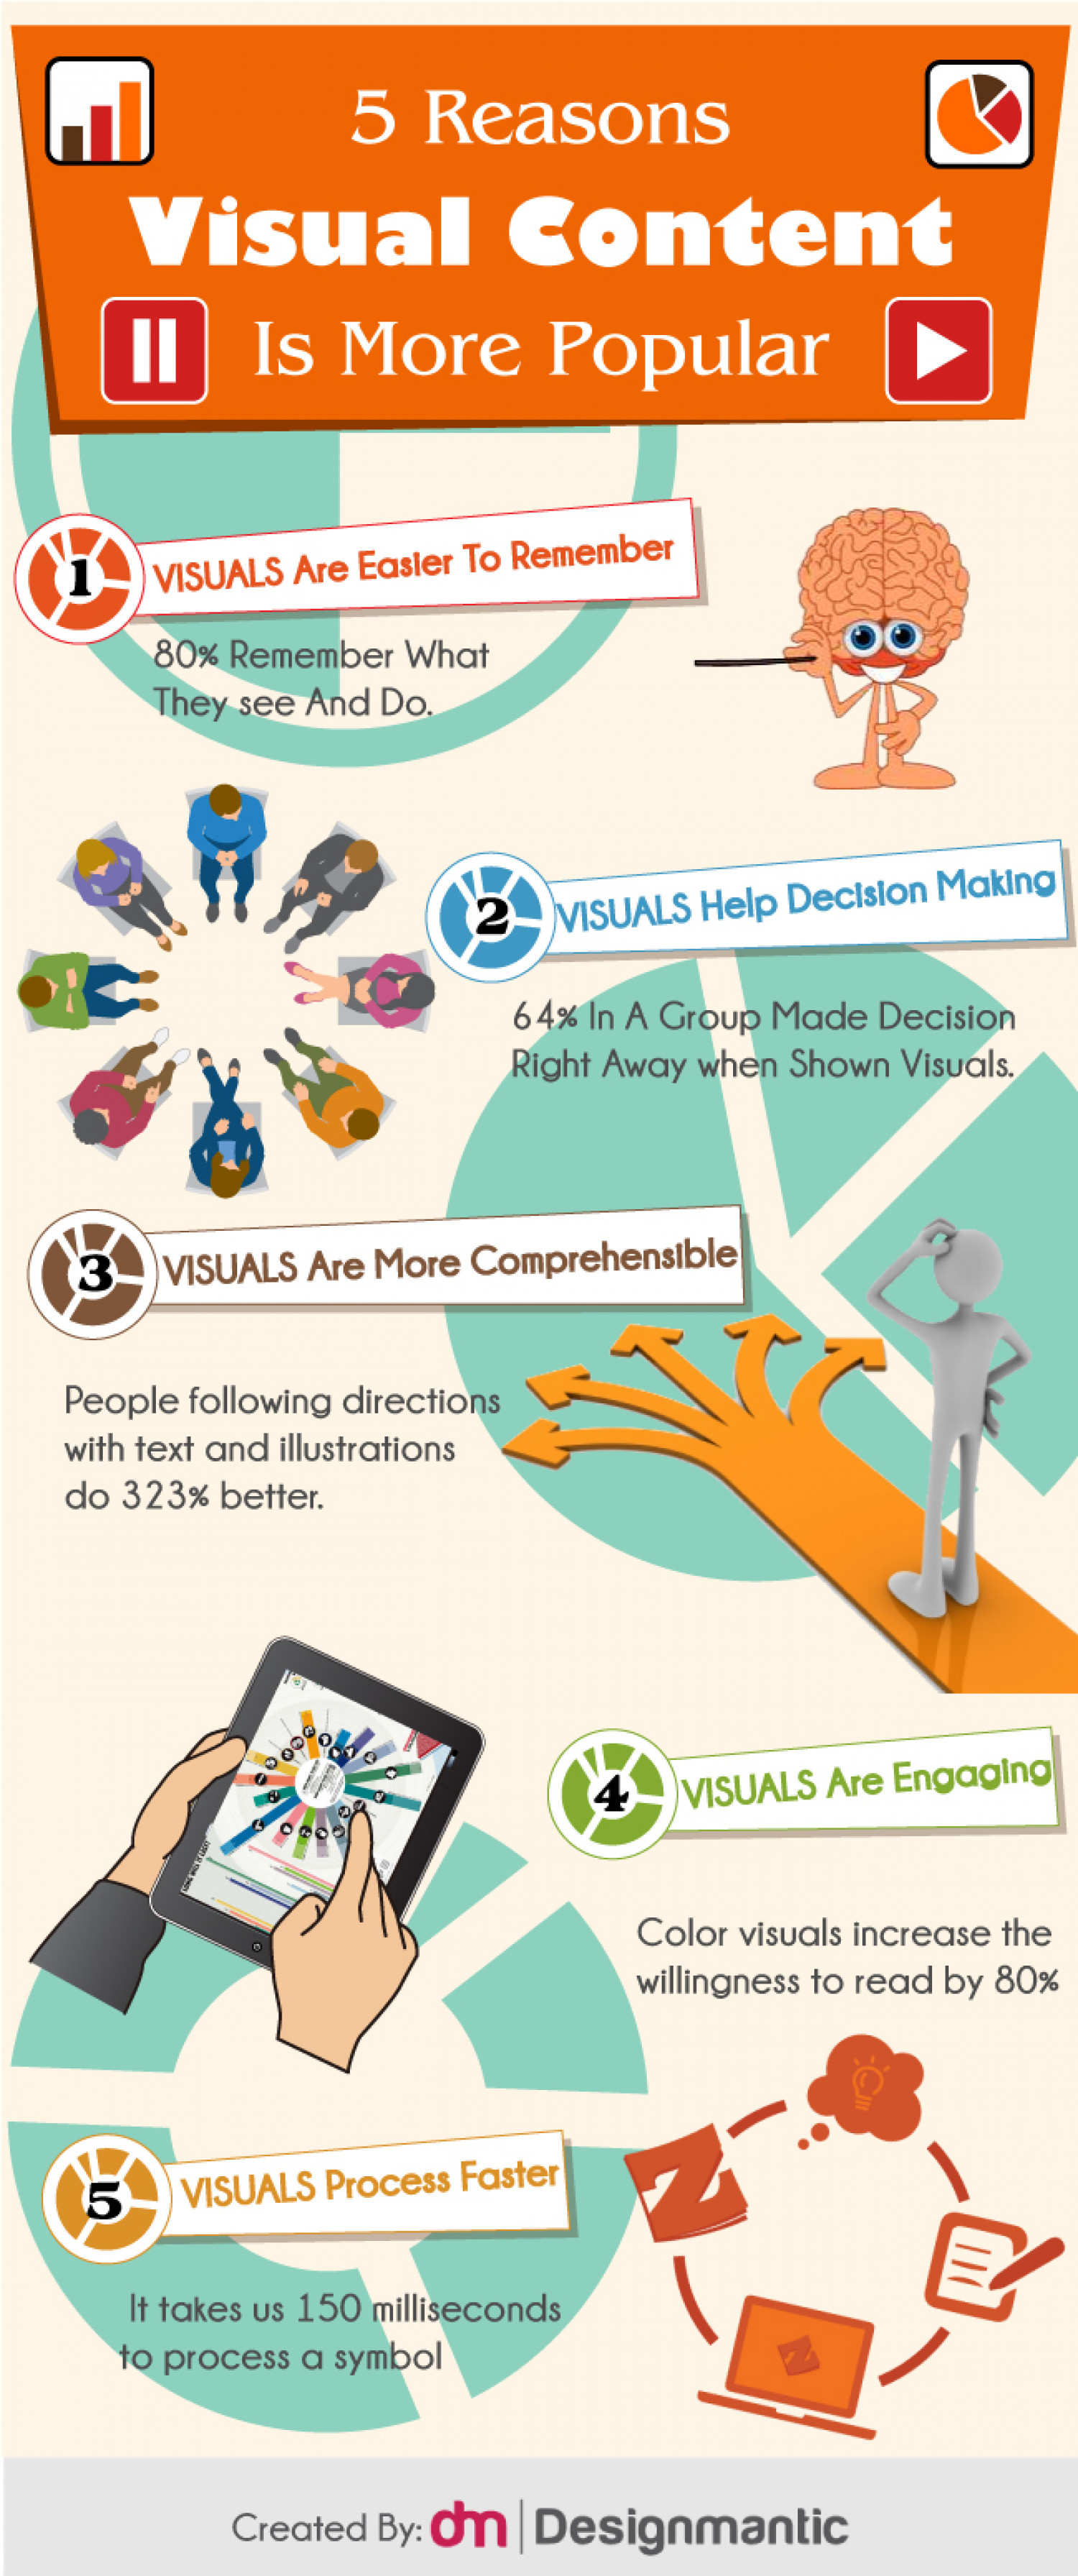 5 Reasons Visual Content is More Popular Infographic